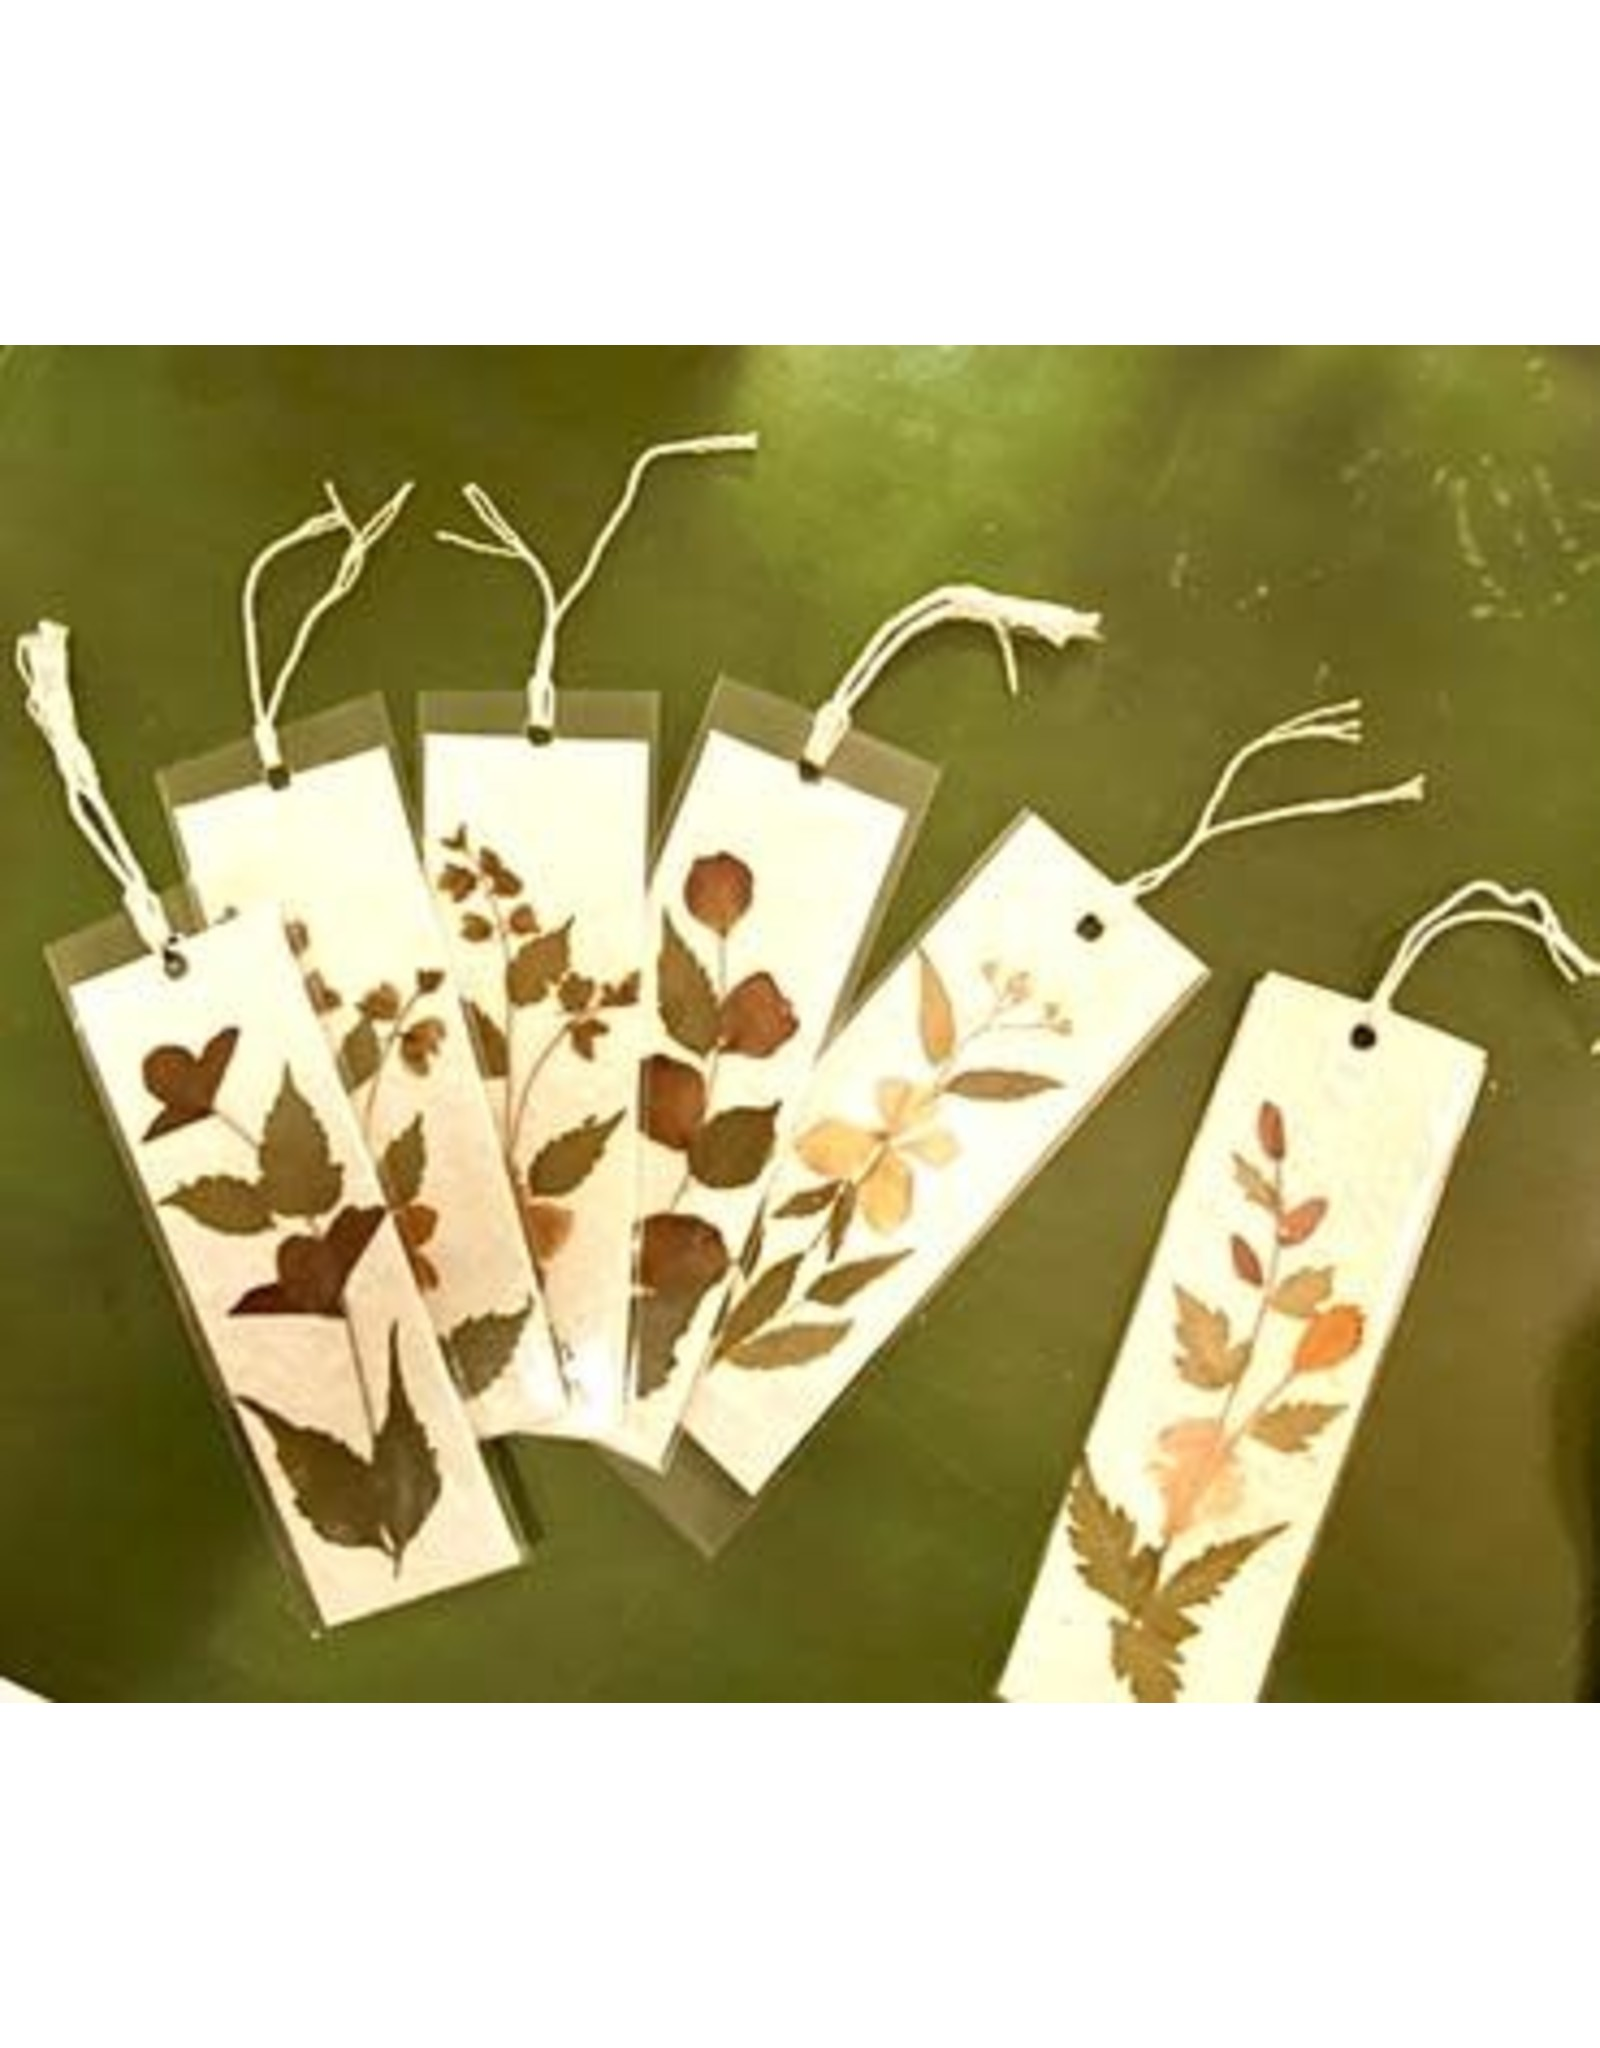 Mulberry Paper Bookmark w/ Dried Flowers, Vietnam